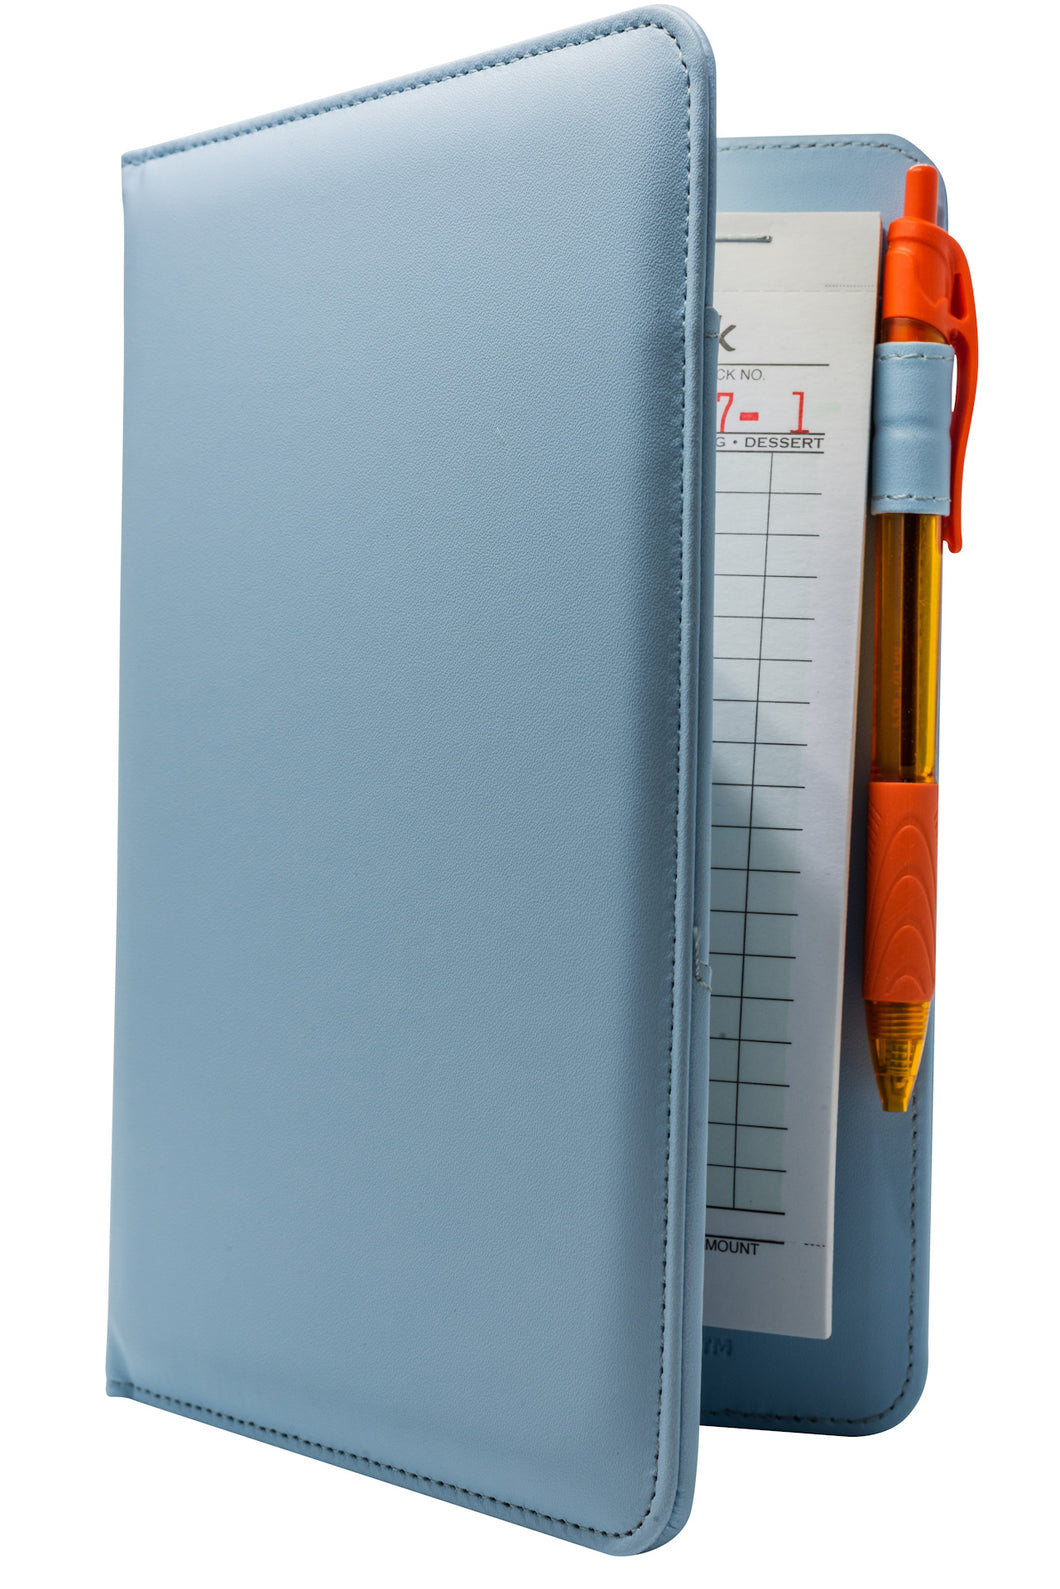 Light Blue Server Book with Orange Pen for Restaurant Waitresses